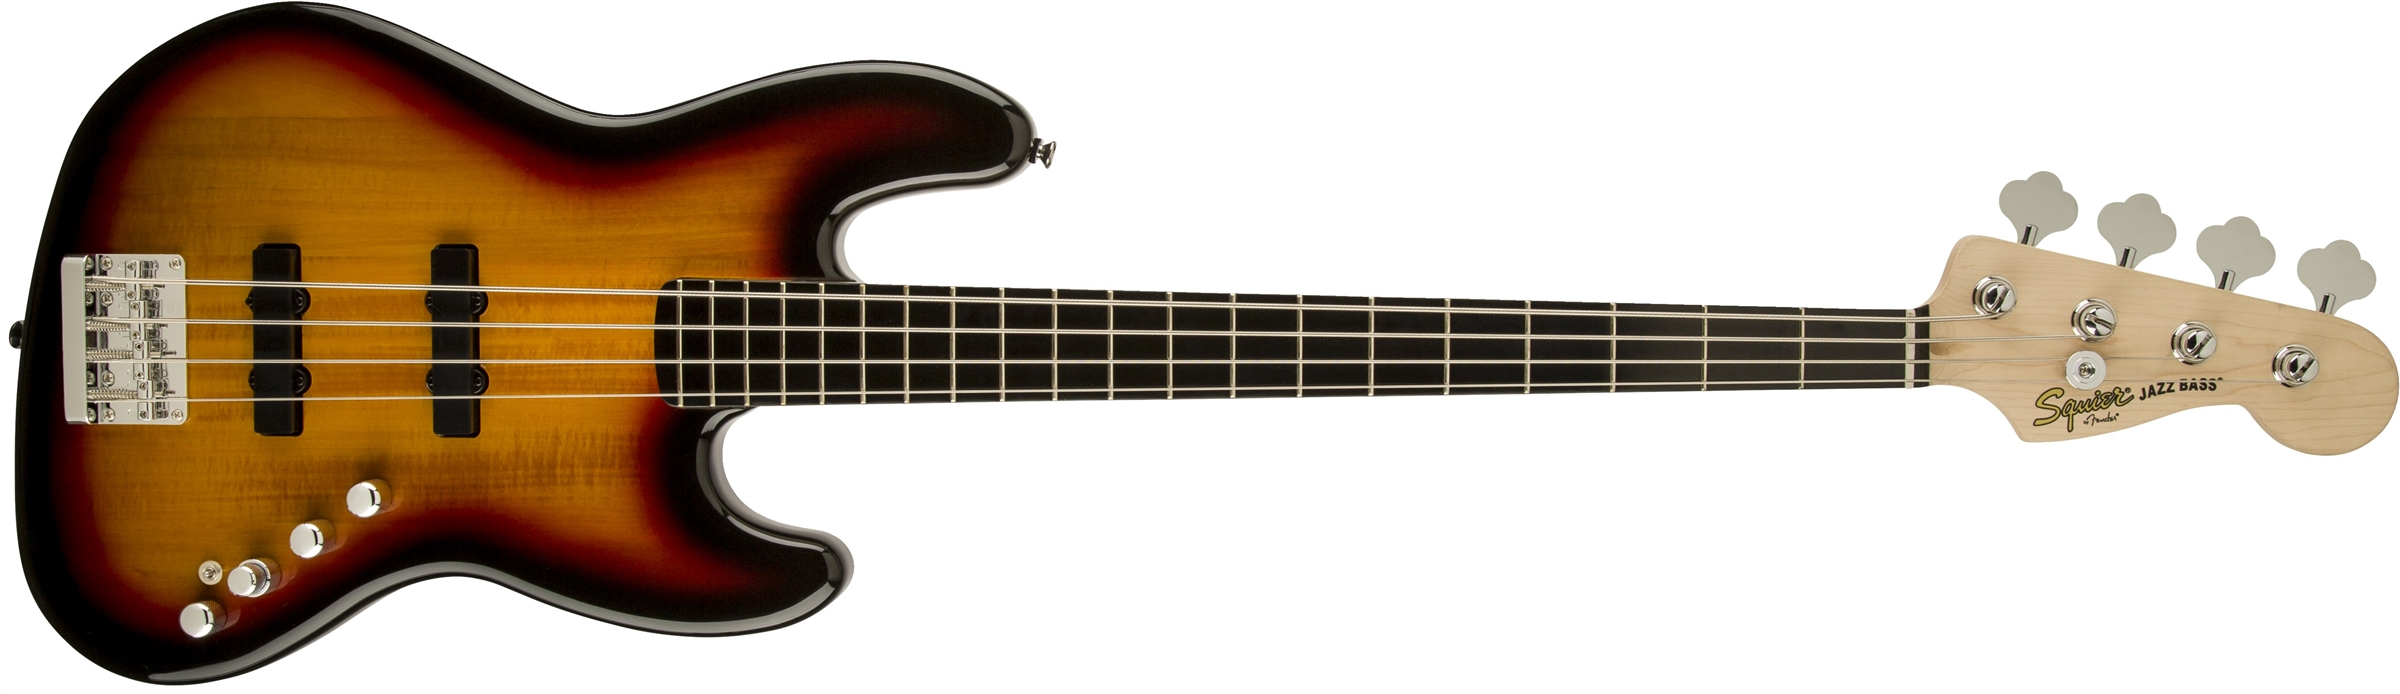 squier® deluxe jazz bass® iv active 4 string ebonol fingerboard deluxe jazz bass® active iv 3 color sunburst